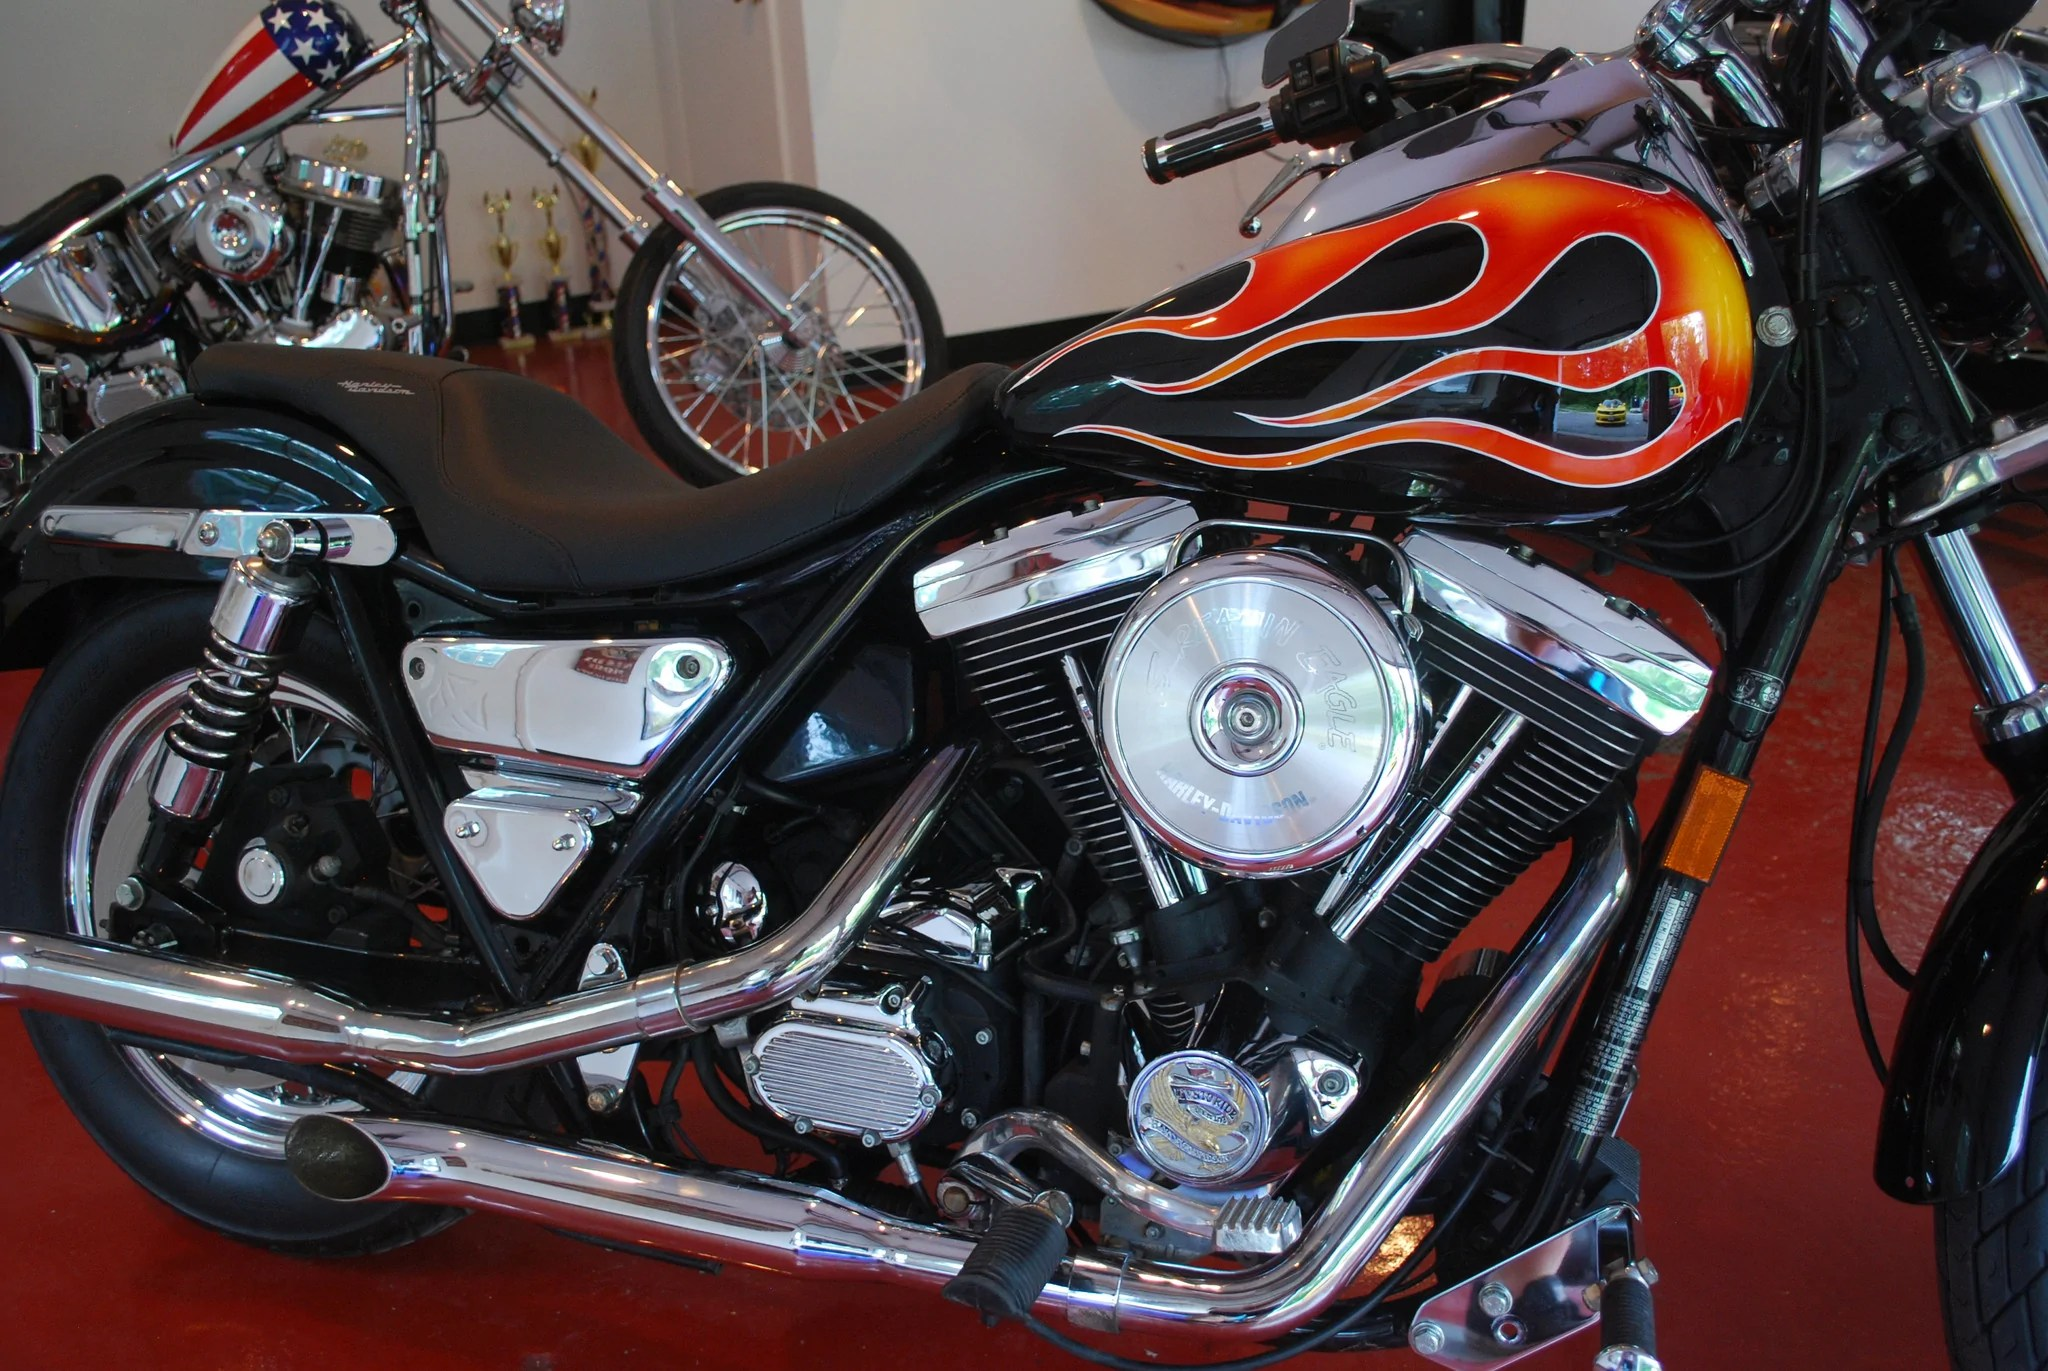 Harley Davidson Fxr With Flames - -twins -8s